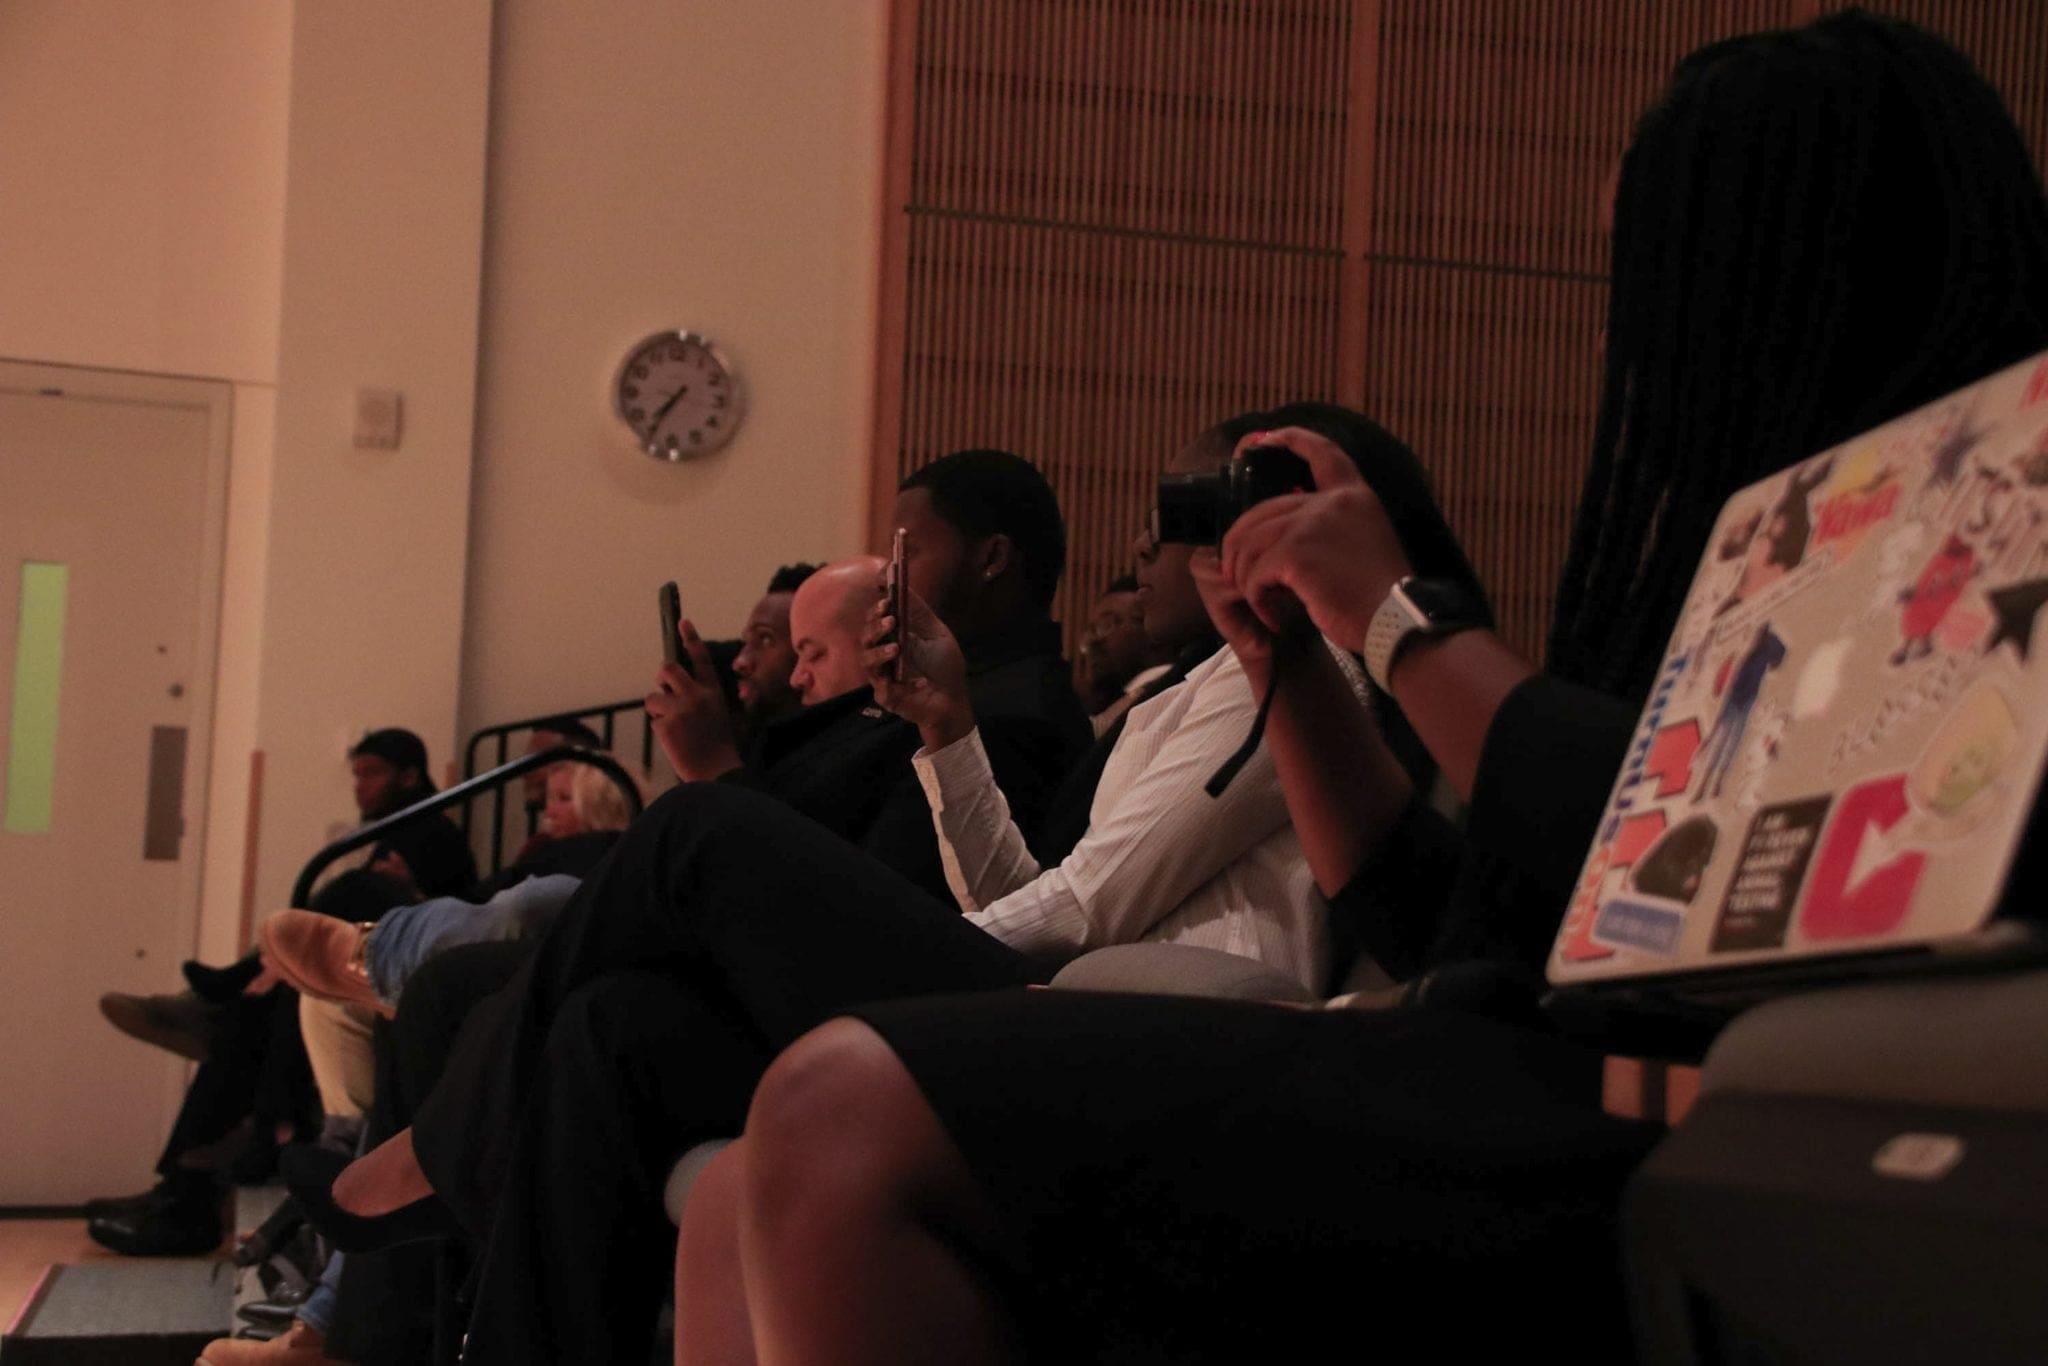 Students in the seats attending the event were comprised of many different organizations on campus.